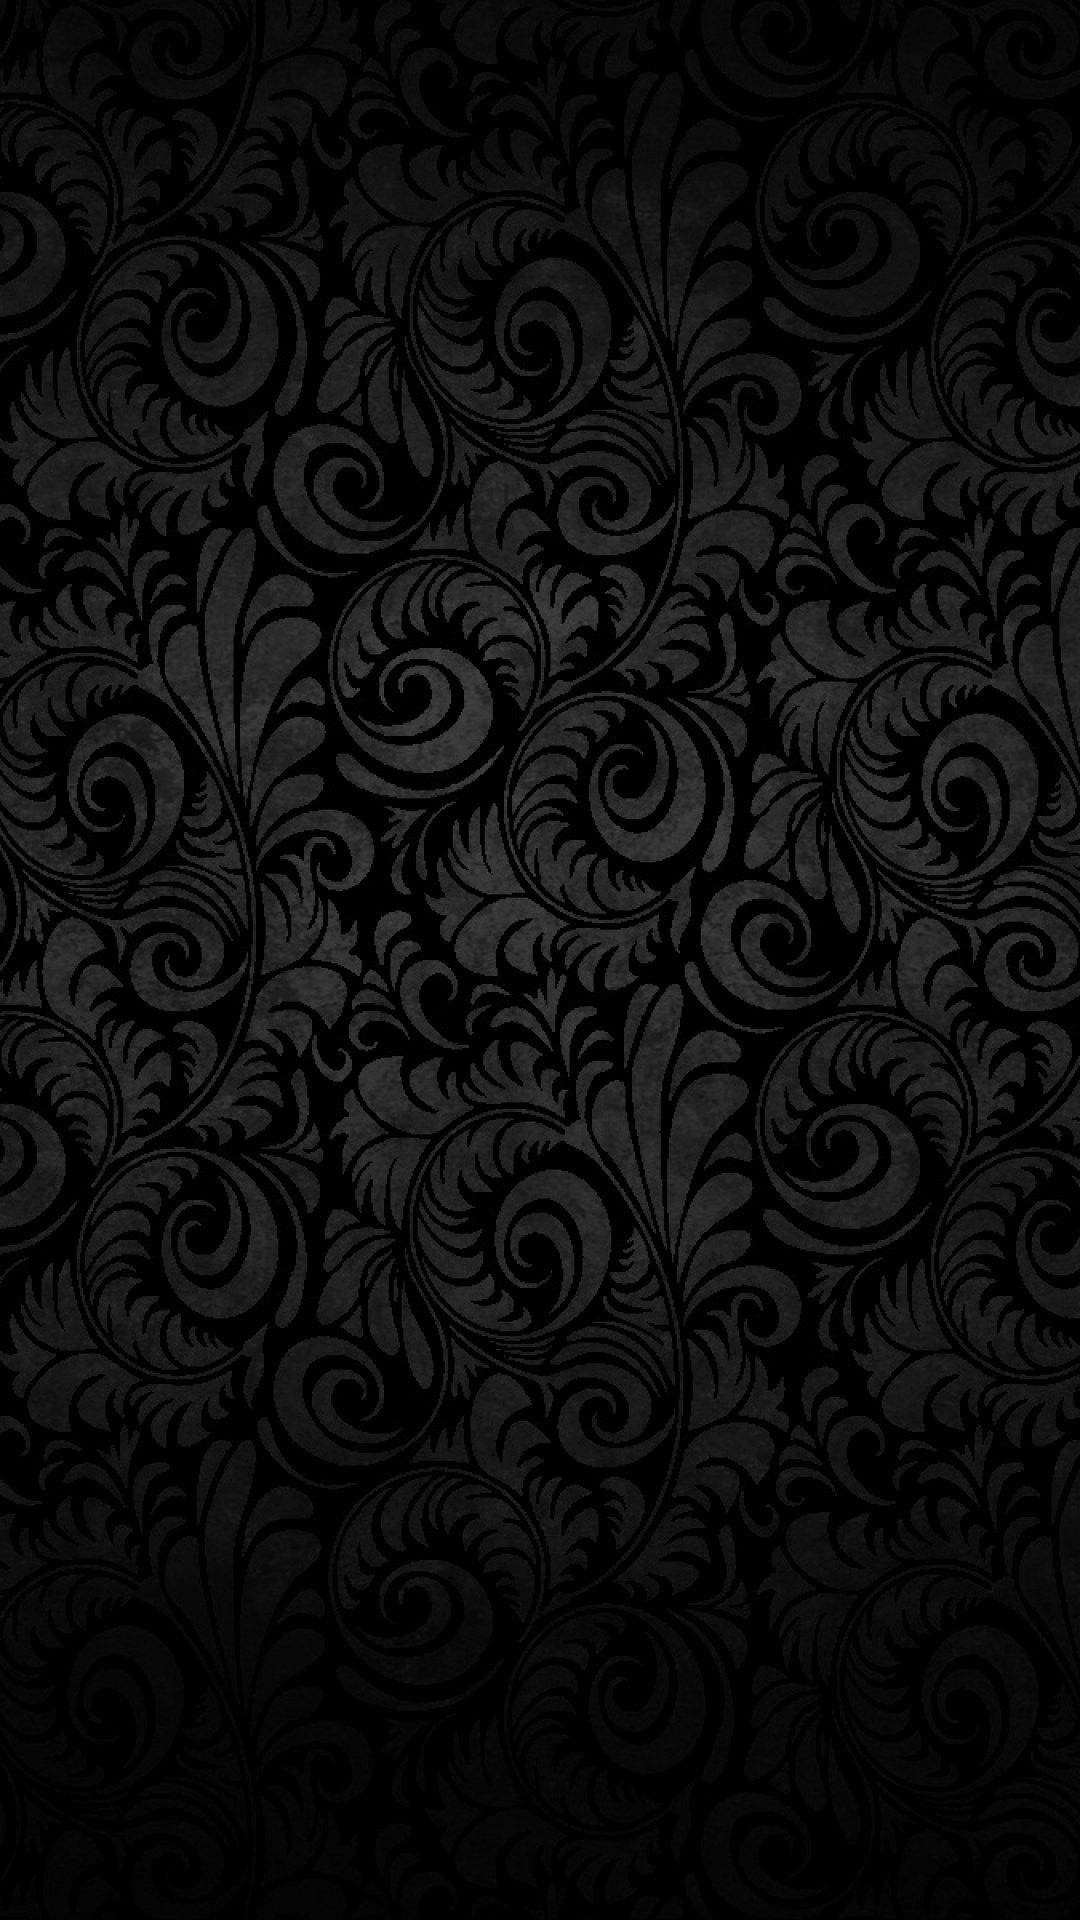 Best Android Wallpaper 2019 Dark Hd Wallpapers For Android